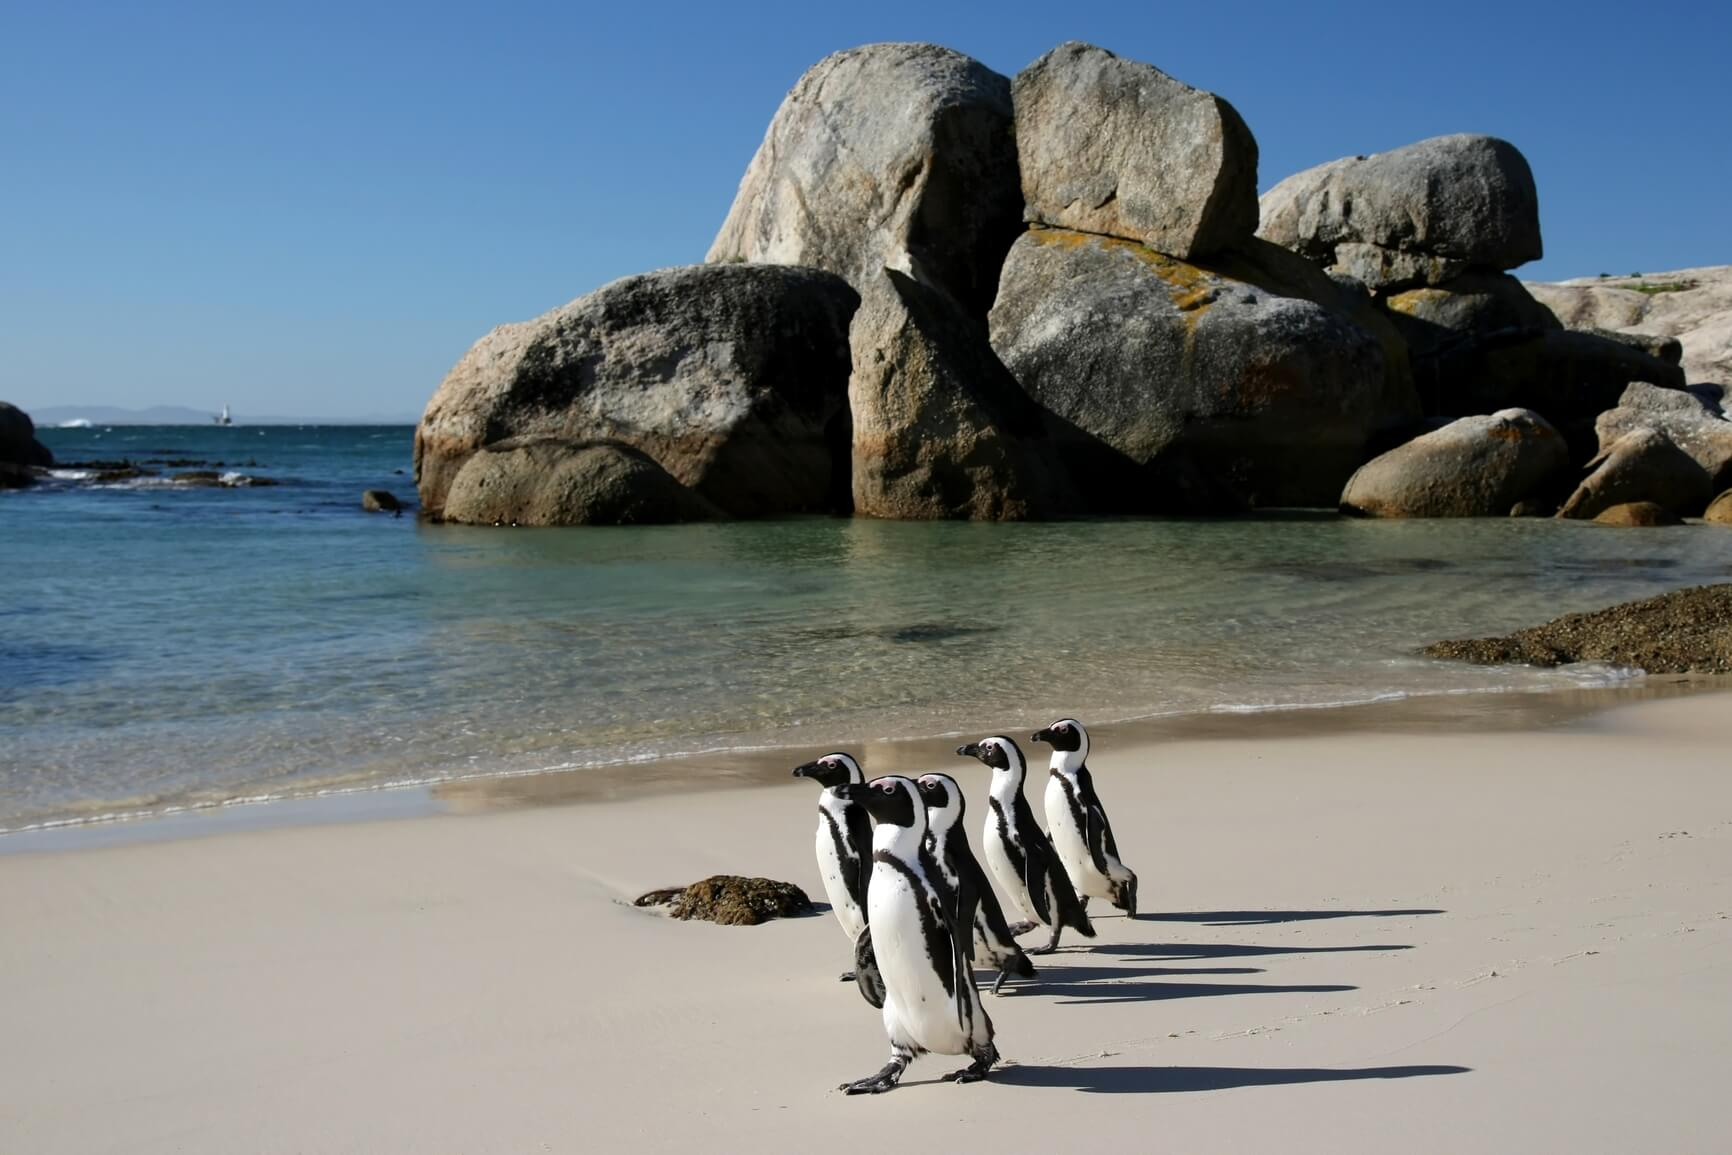 HOT!! Los Angeles to Cape Town, South Africa for only $575 roundtrip